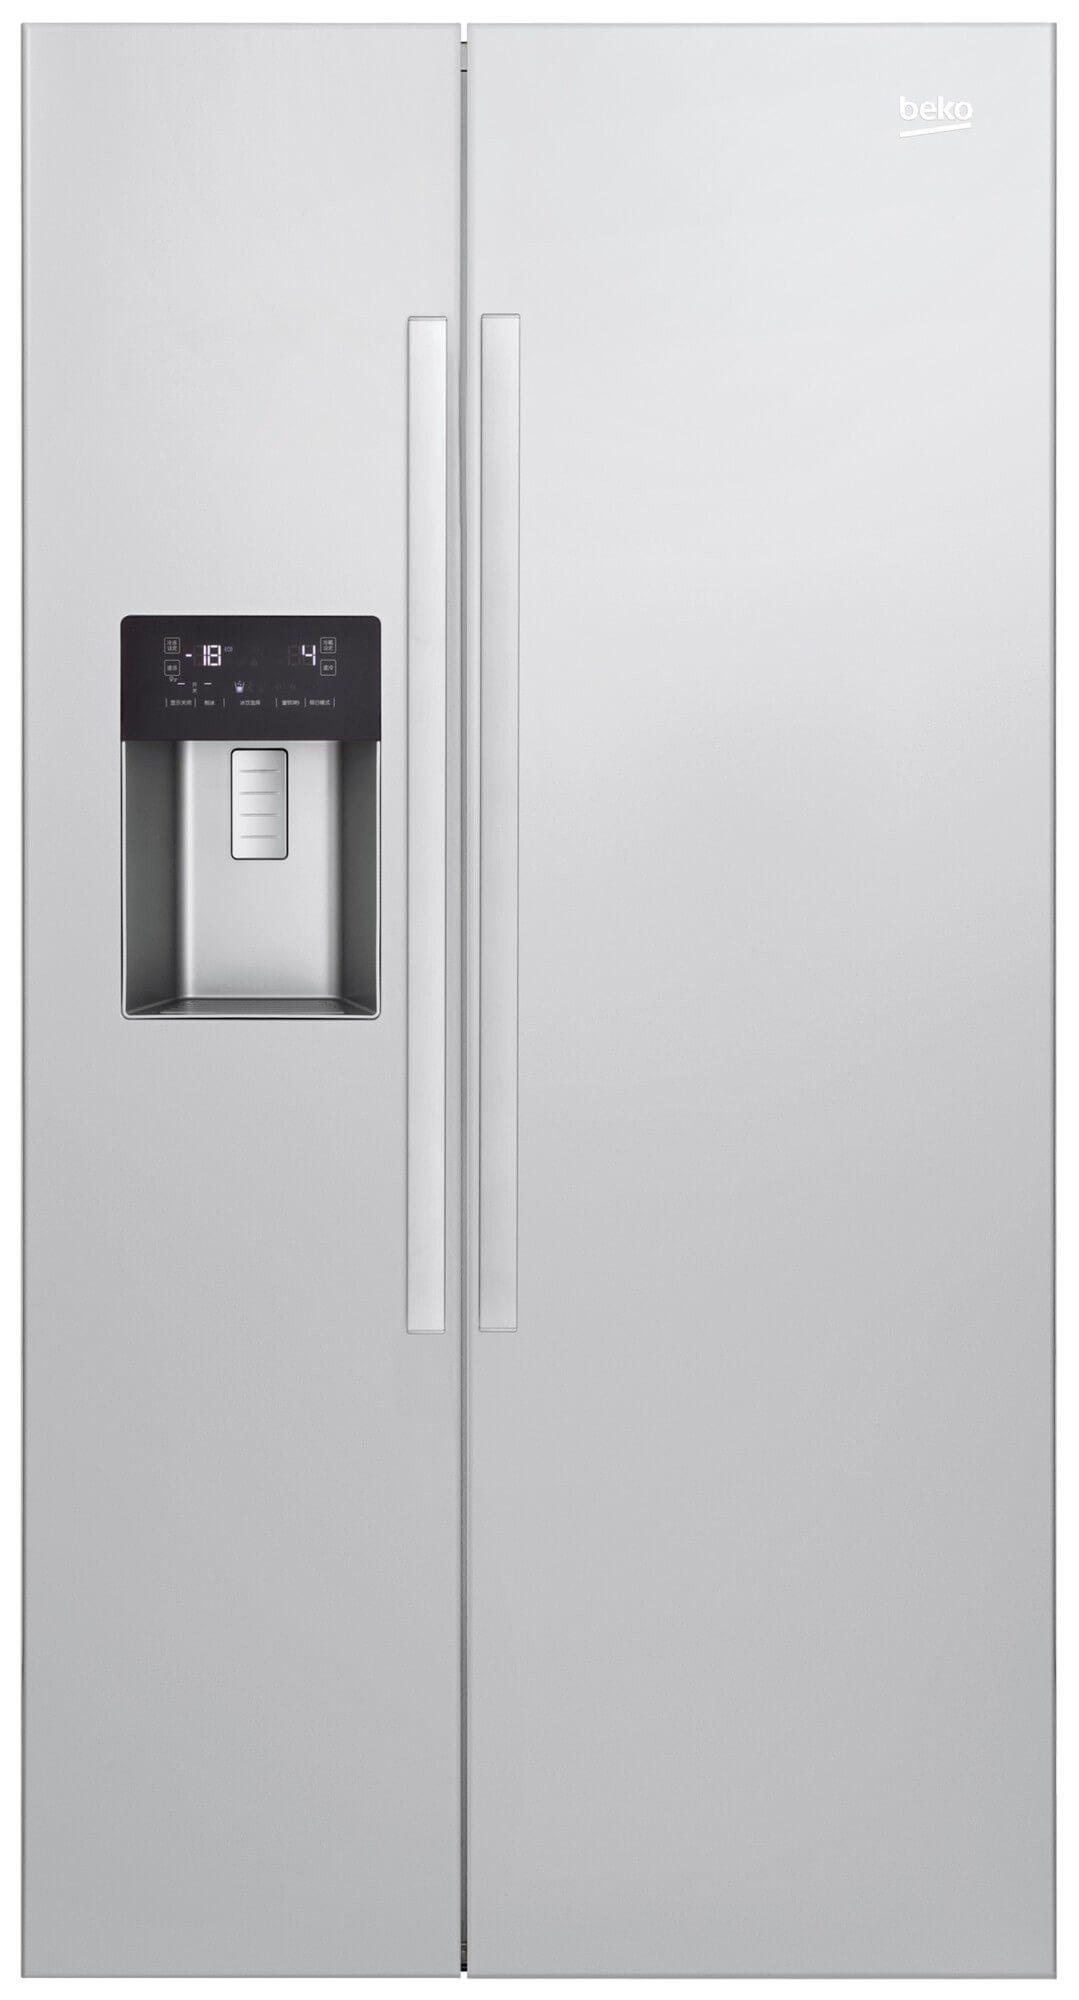 Frigider Side-by-side Beko GN162320X